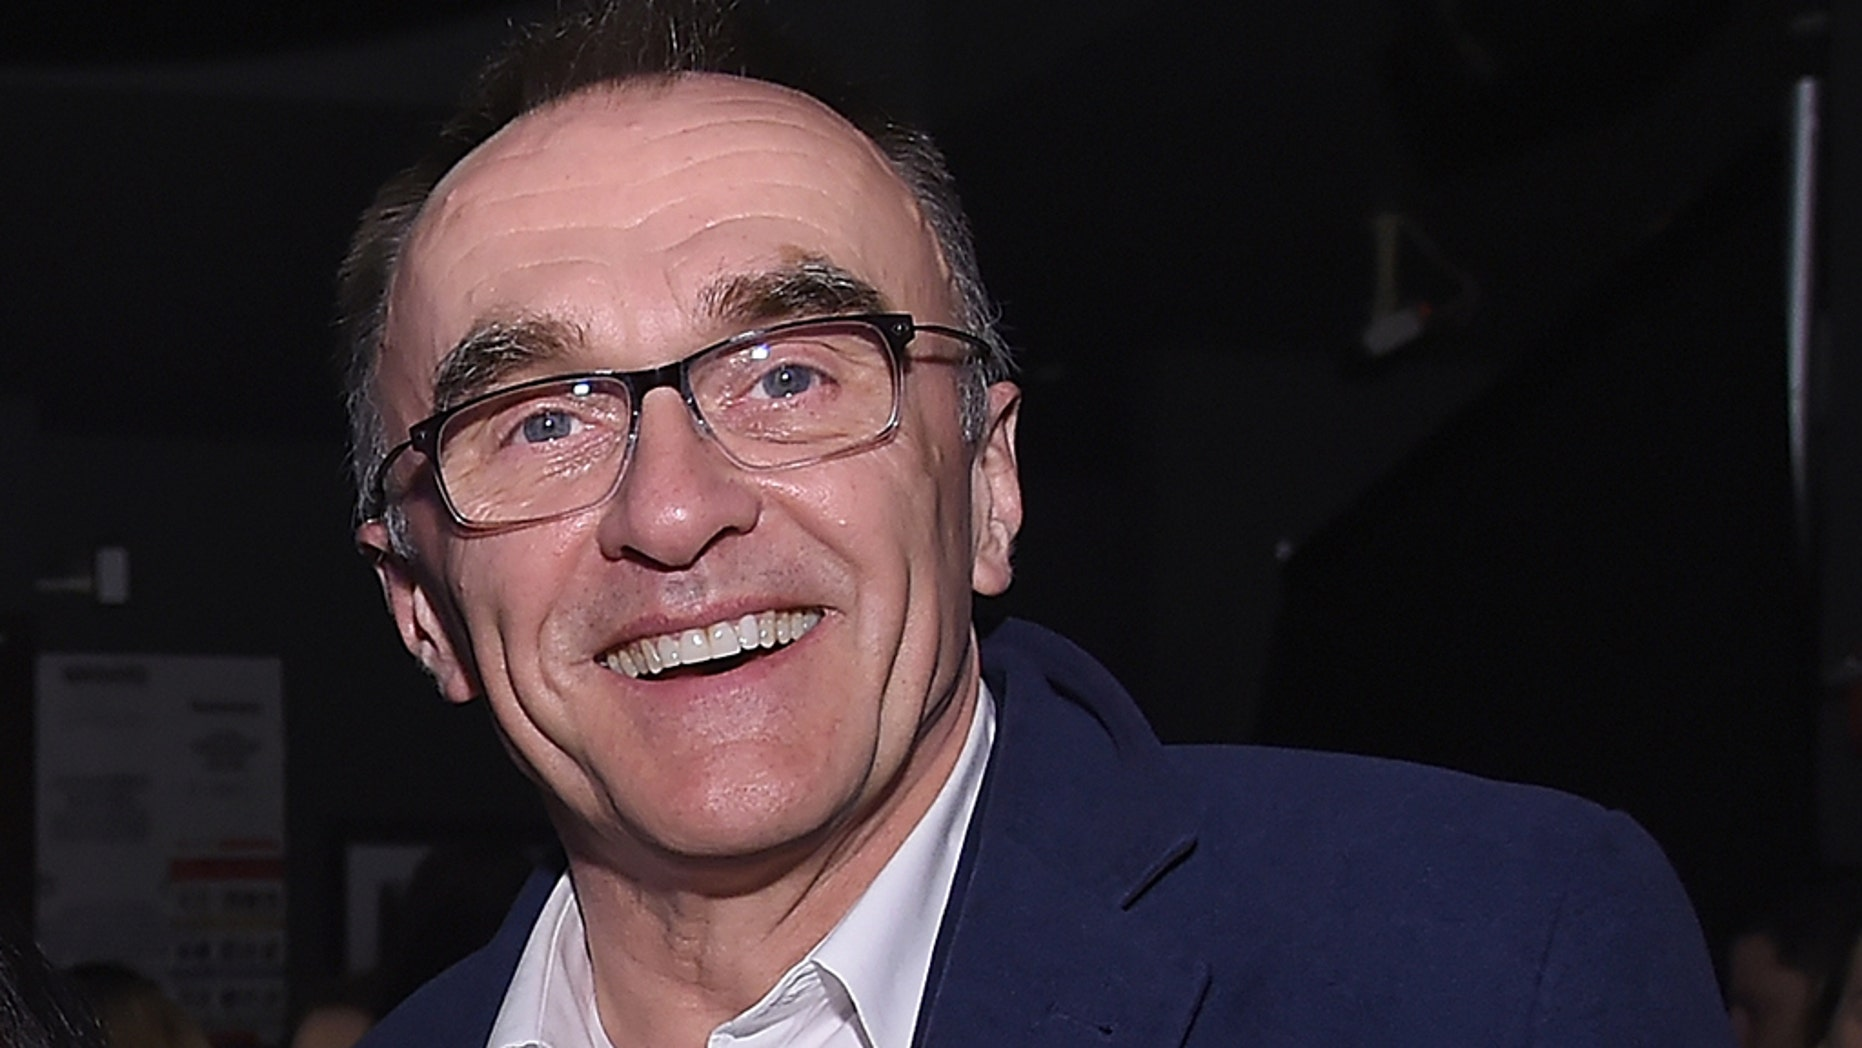 English movie director Danny Boyle won't be directing the new James Bond movie.